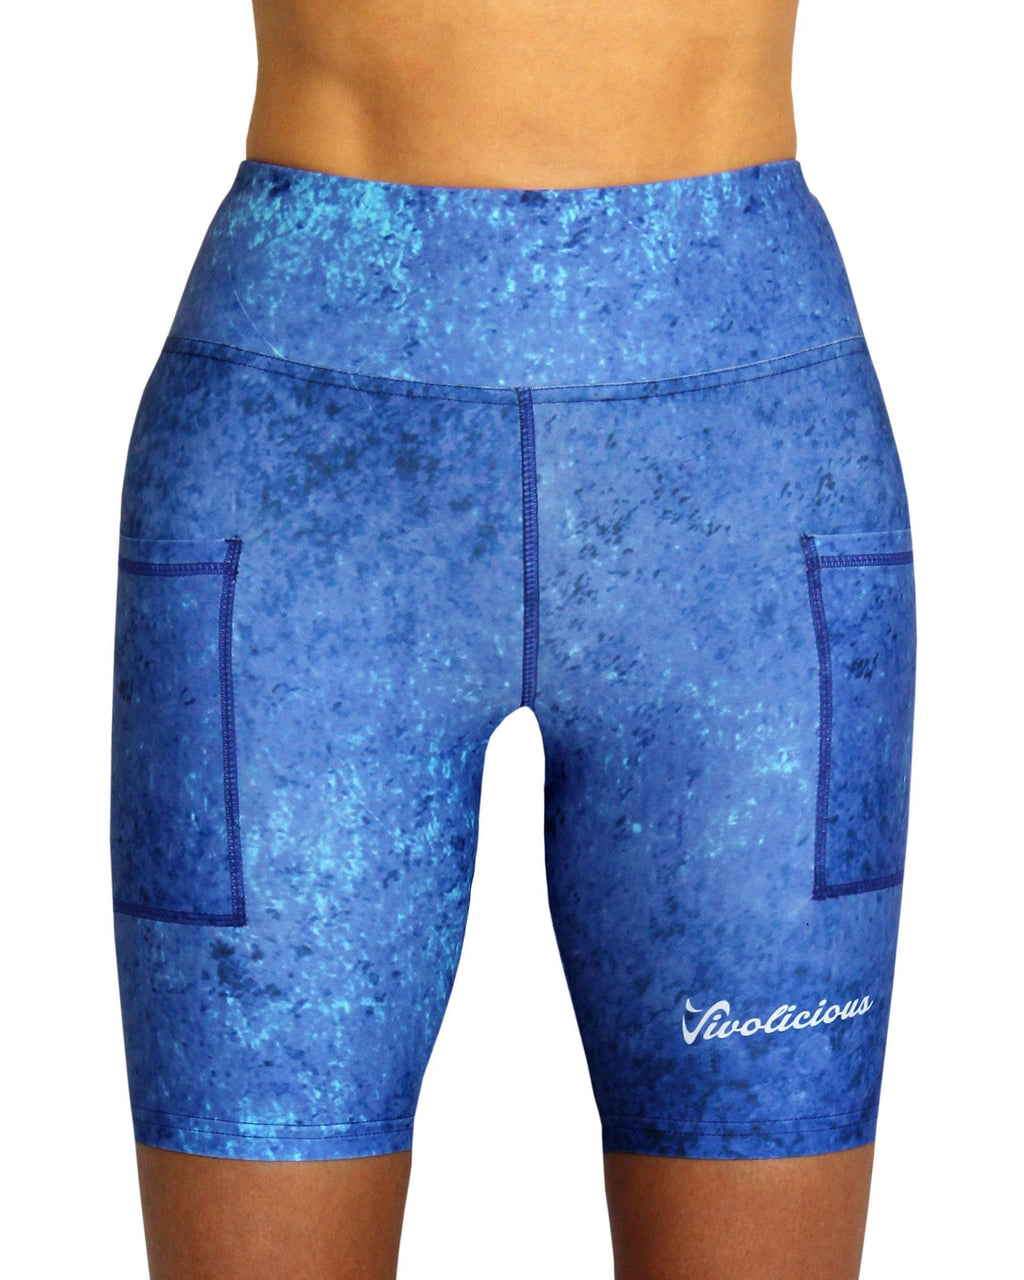 Vivolicious CLUB BLUE Women's  Tech Shorts